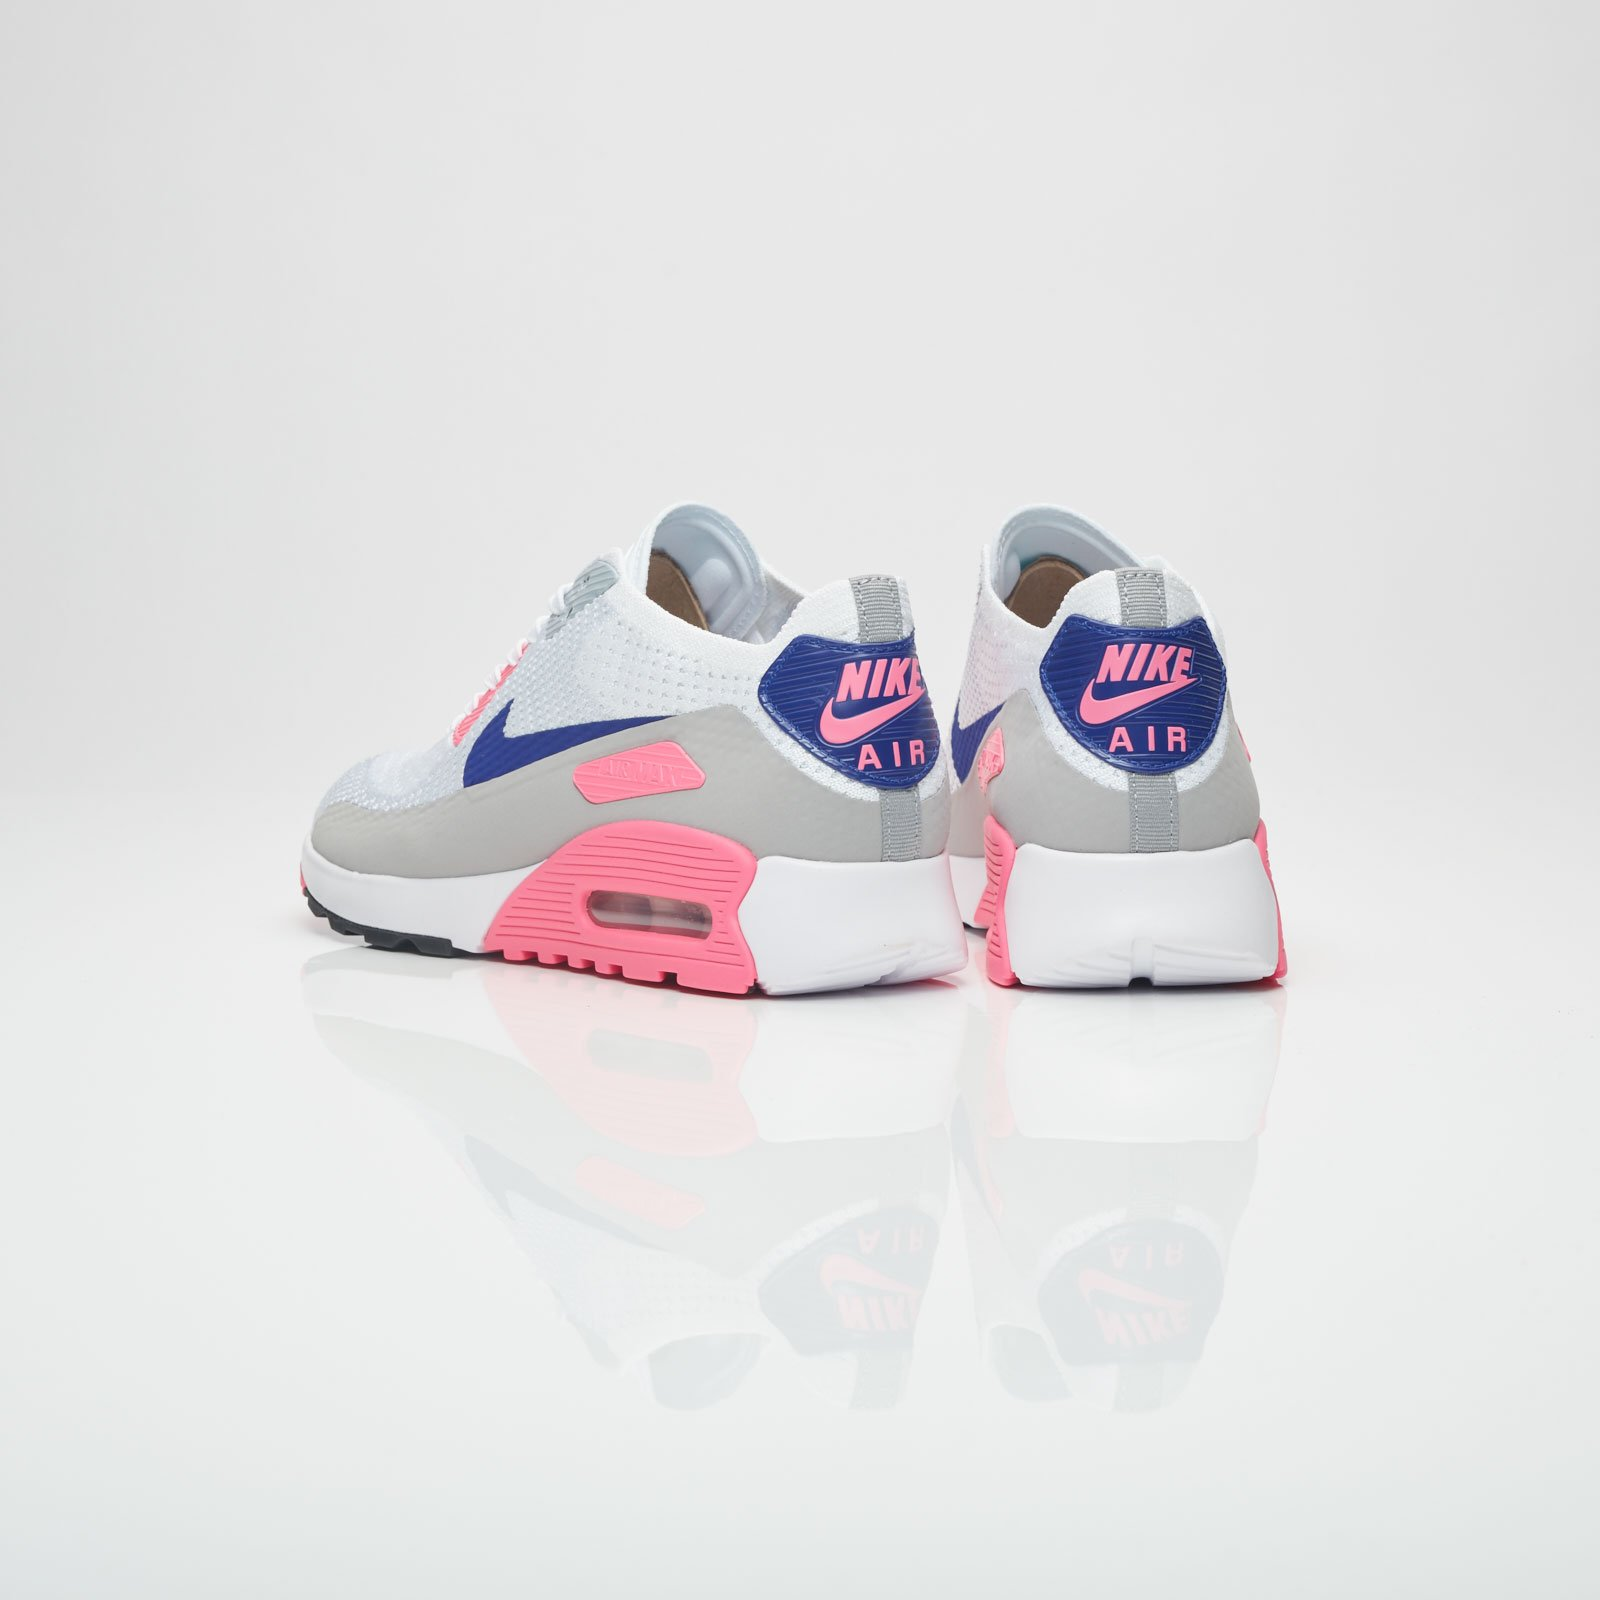 Nike Air Max 90 Ultra 2.0 Flyknit WMNS Laser Pink | Nike